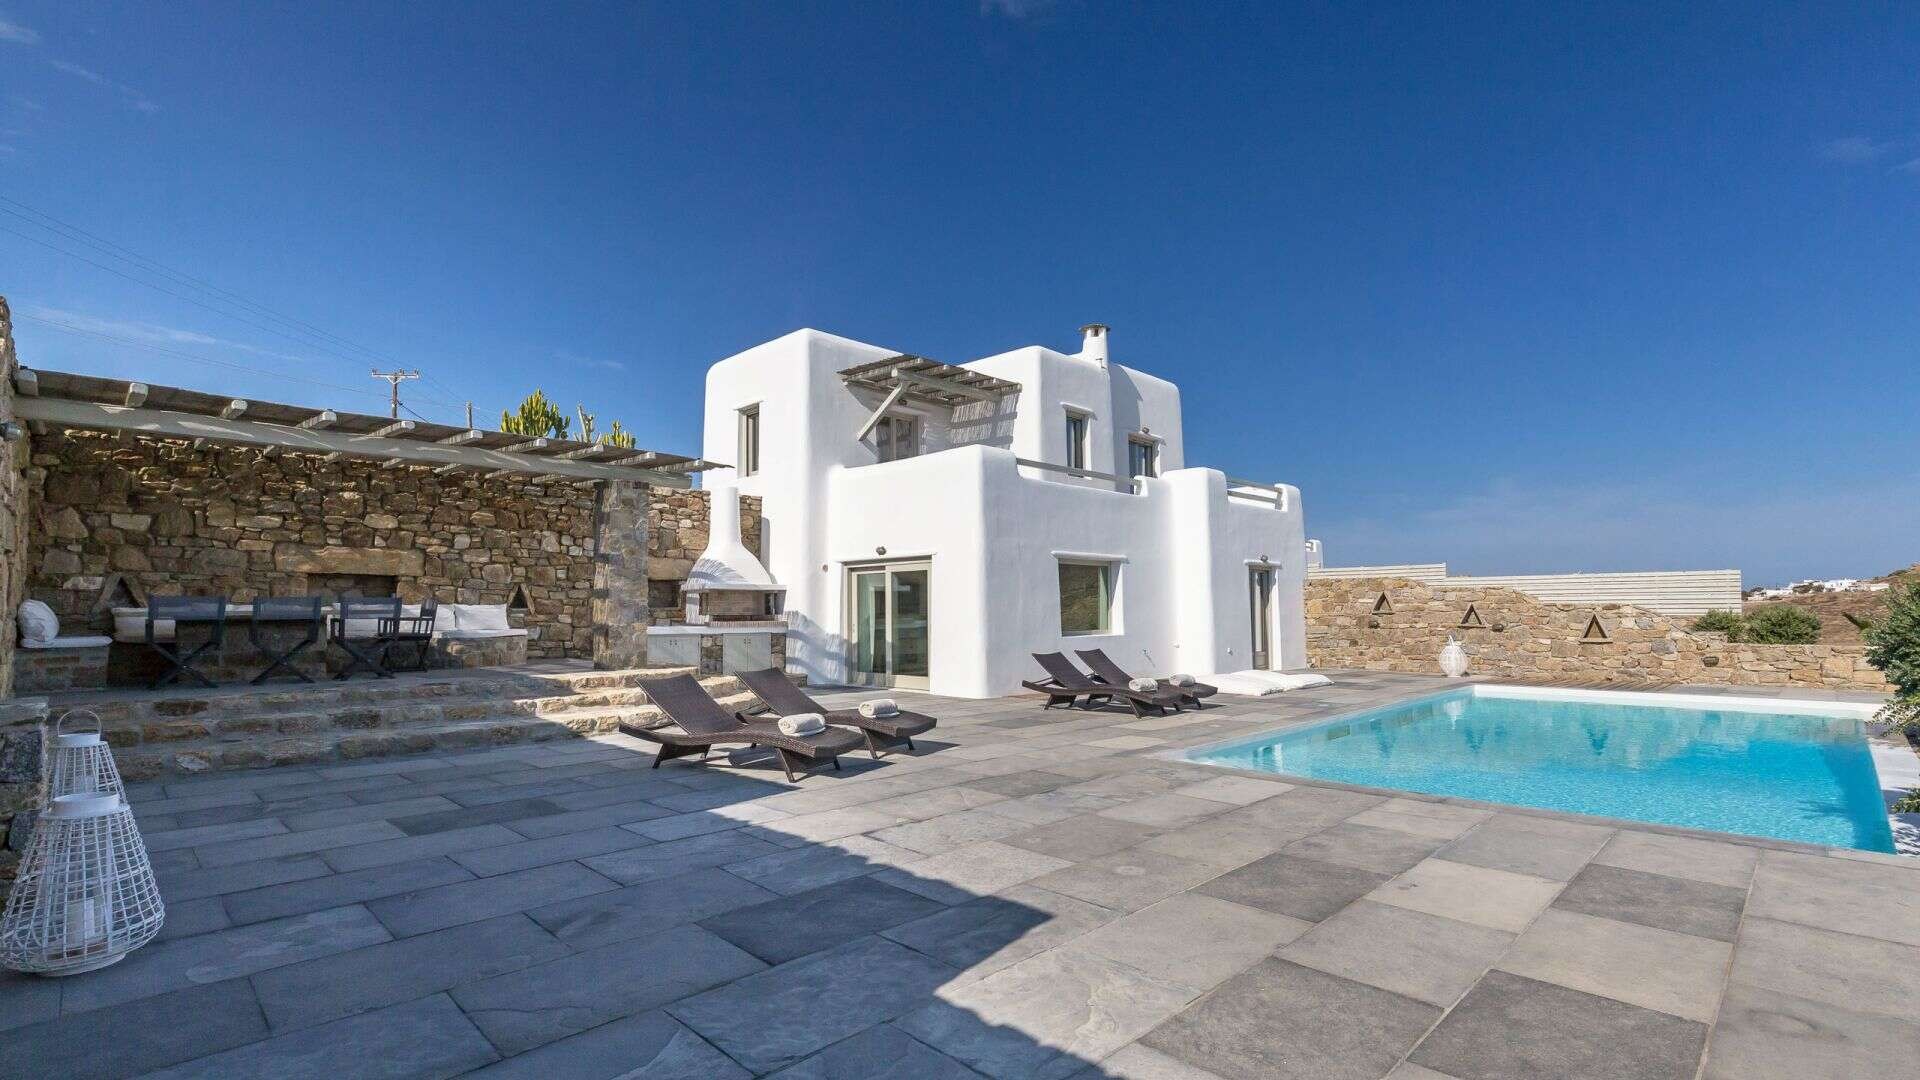 Luxury vacation rentals europe - Greece - Mykonos - Kalafatis - Poseidon 1 - Image 1/12